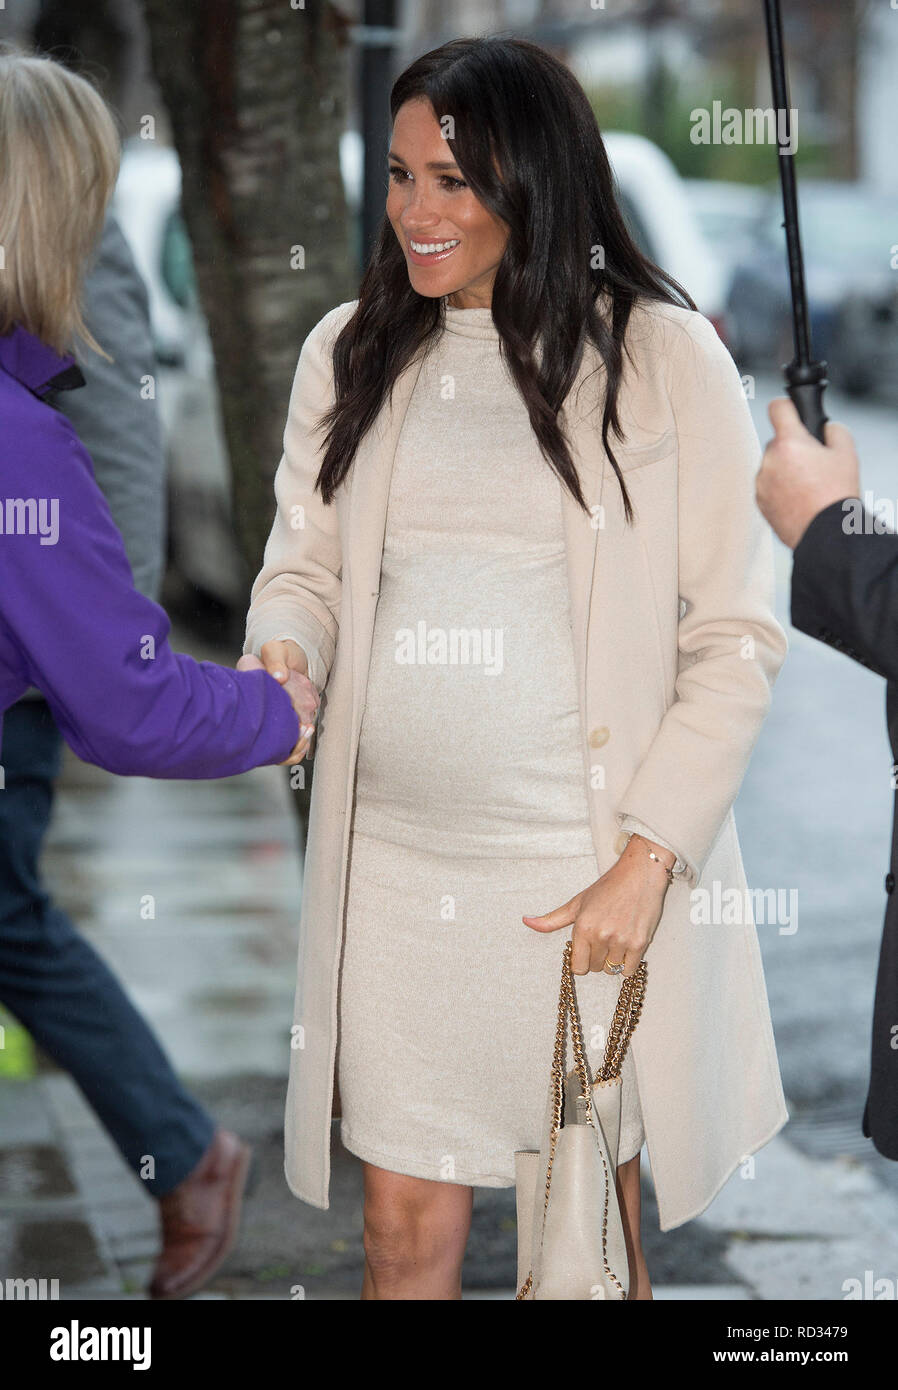 The Duchess of Sussex during a visit to Mayhew, an animal welfare charity she is now supporting as patron, at its offices in north-west London. - Stock Image